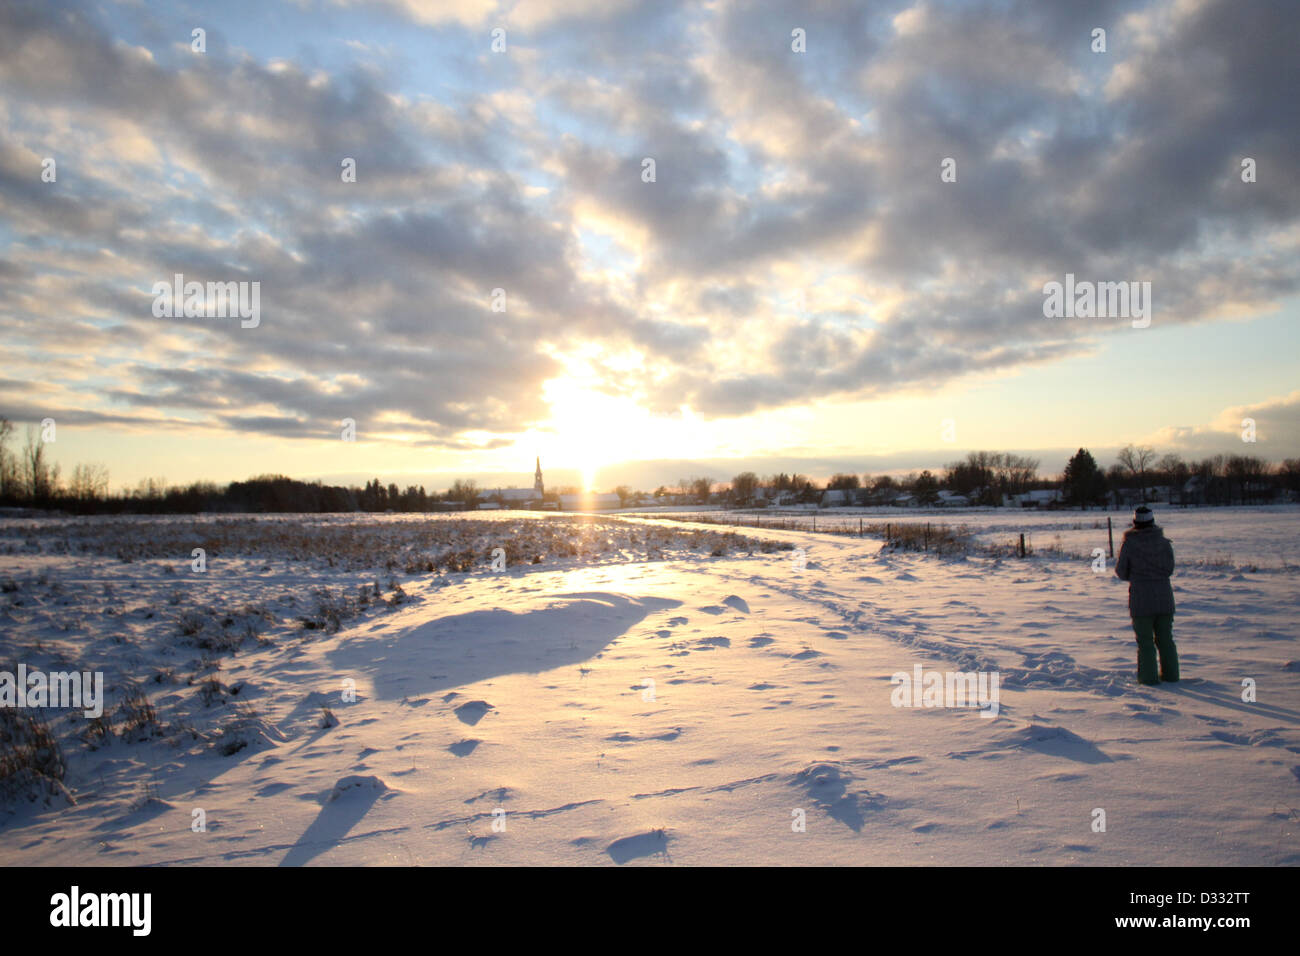 A sunset during winter in St. Agathe, Quebec. THE CANADIAN PRESS IMAGES/Lee Brown - Stock Image